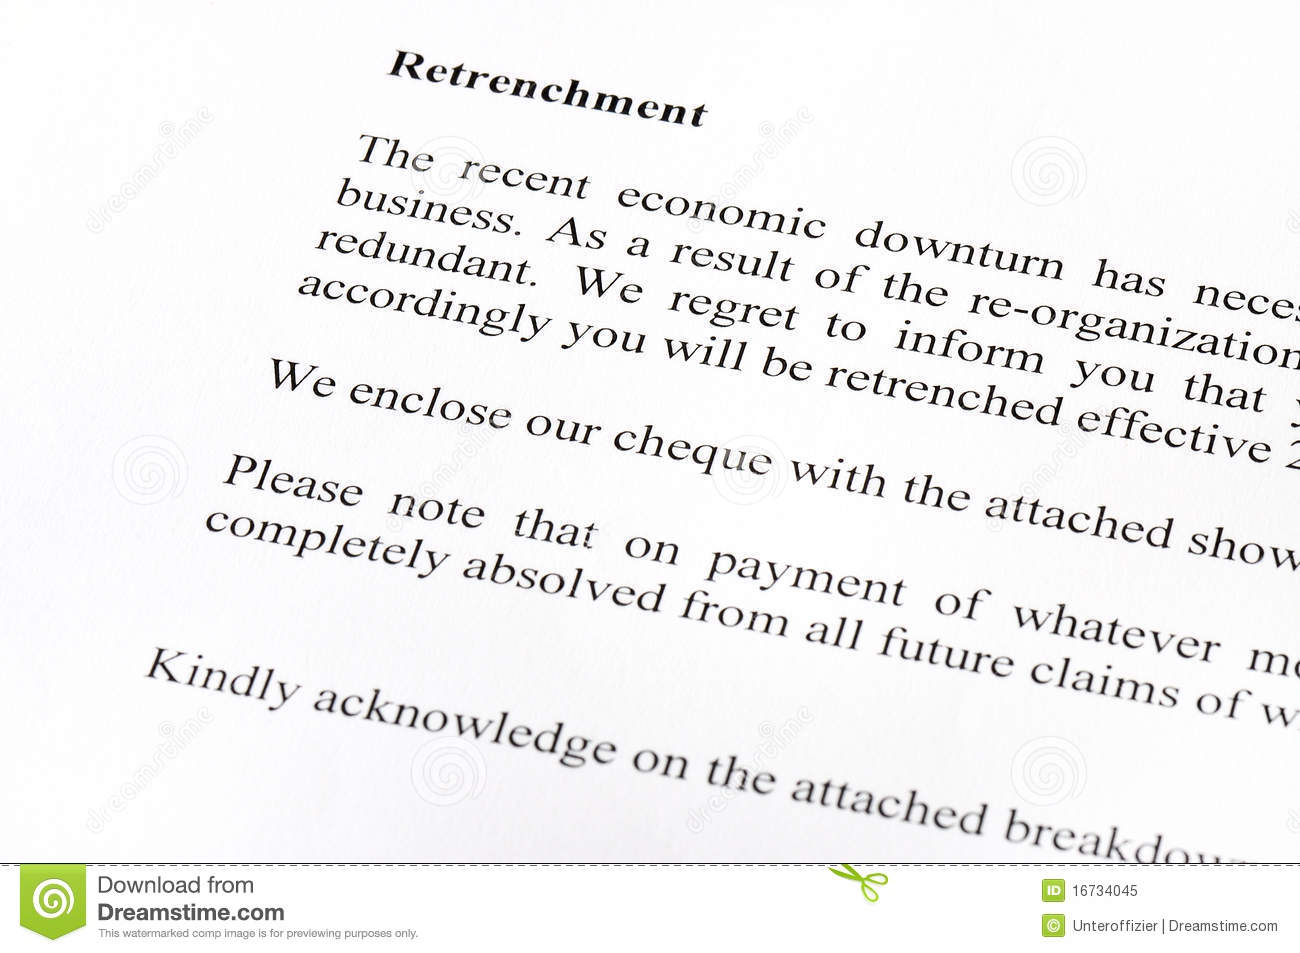 Retrenchment Letter Stock Image Image Of Retrenchment